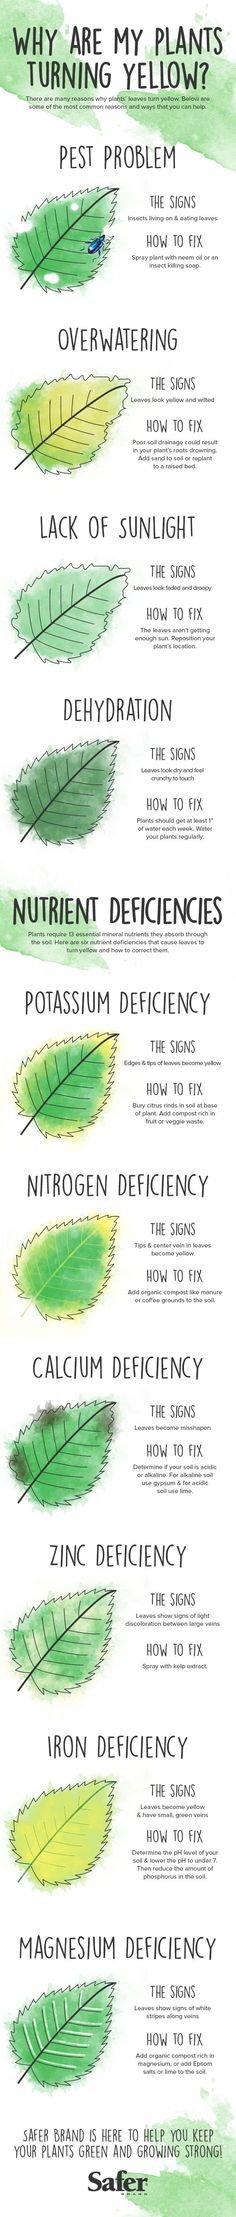 Why Are My Plants Leaves Turning Yellow? Trouble Shooting Common Gardening Problems Before It's Too Late... | http://www.ecosnippets.com/gardening/why-are-my-plants-leaves-turning-yellow-trouble-shooting-common-problems/